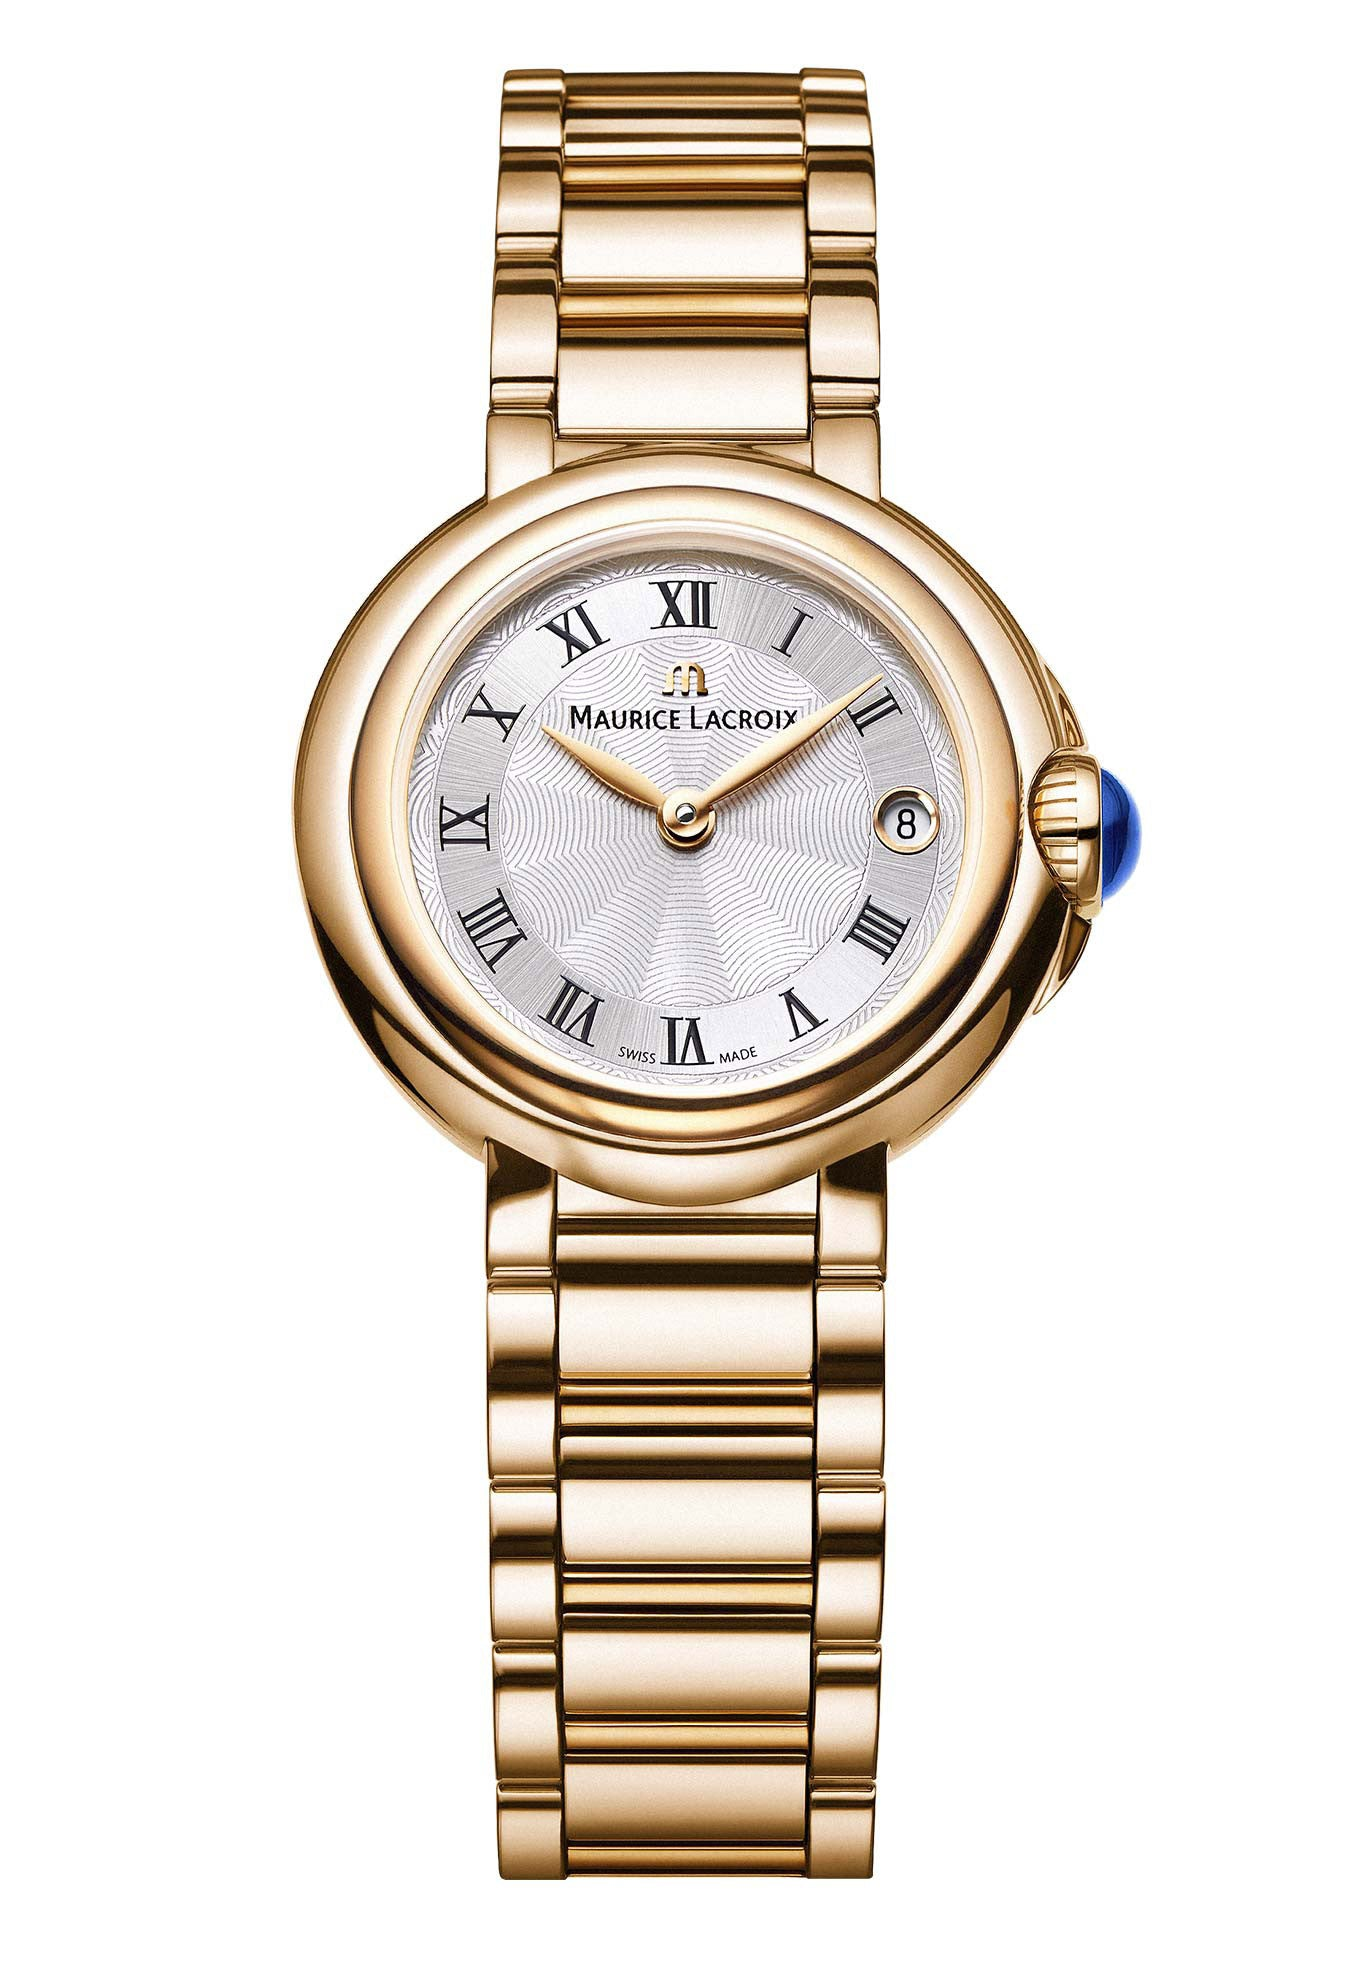 Maurice Lacroix Watch Fiaba Ladies S